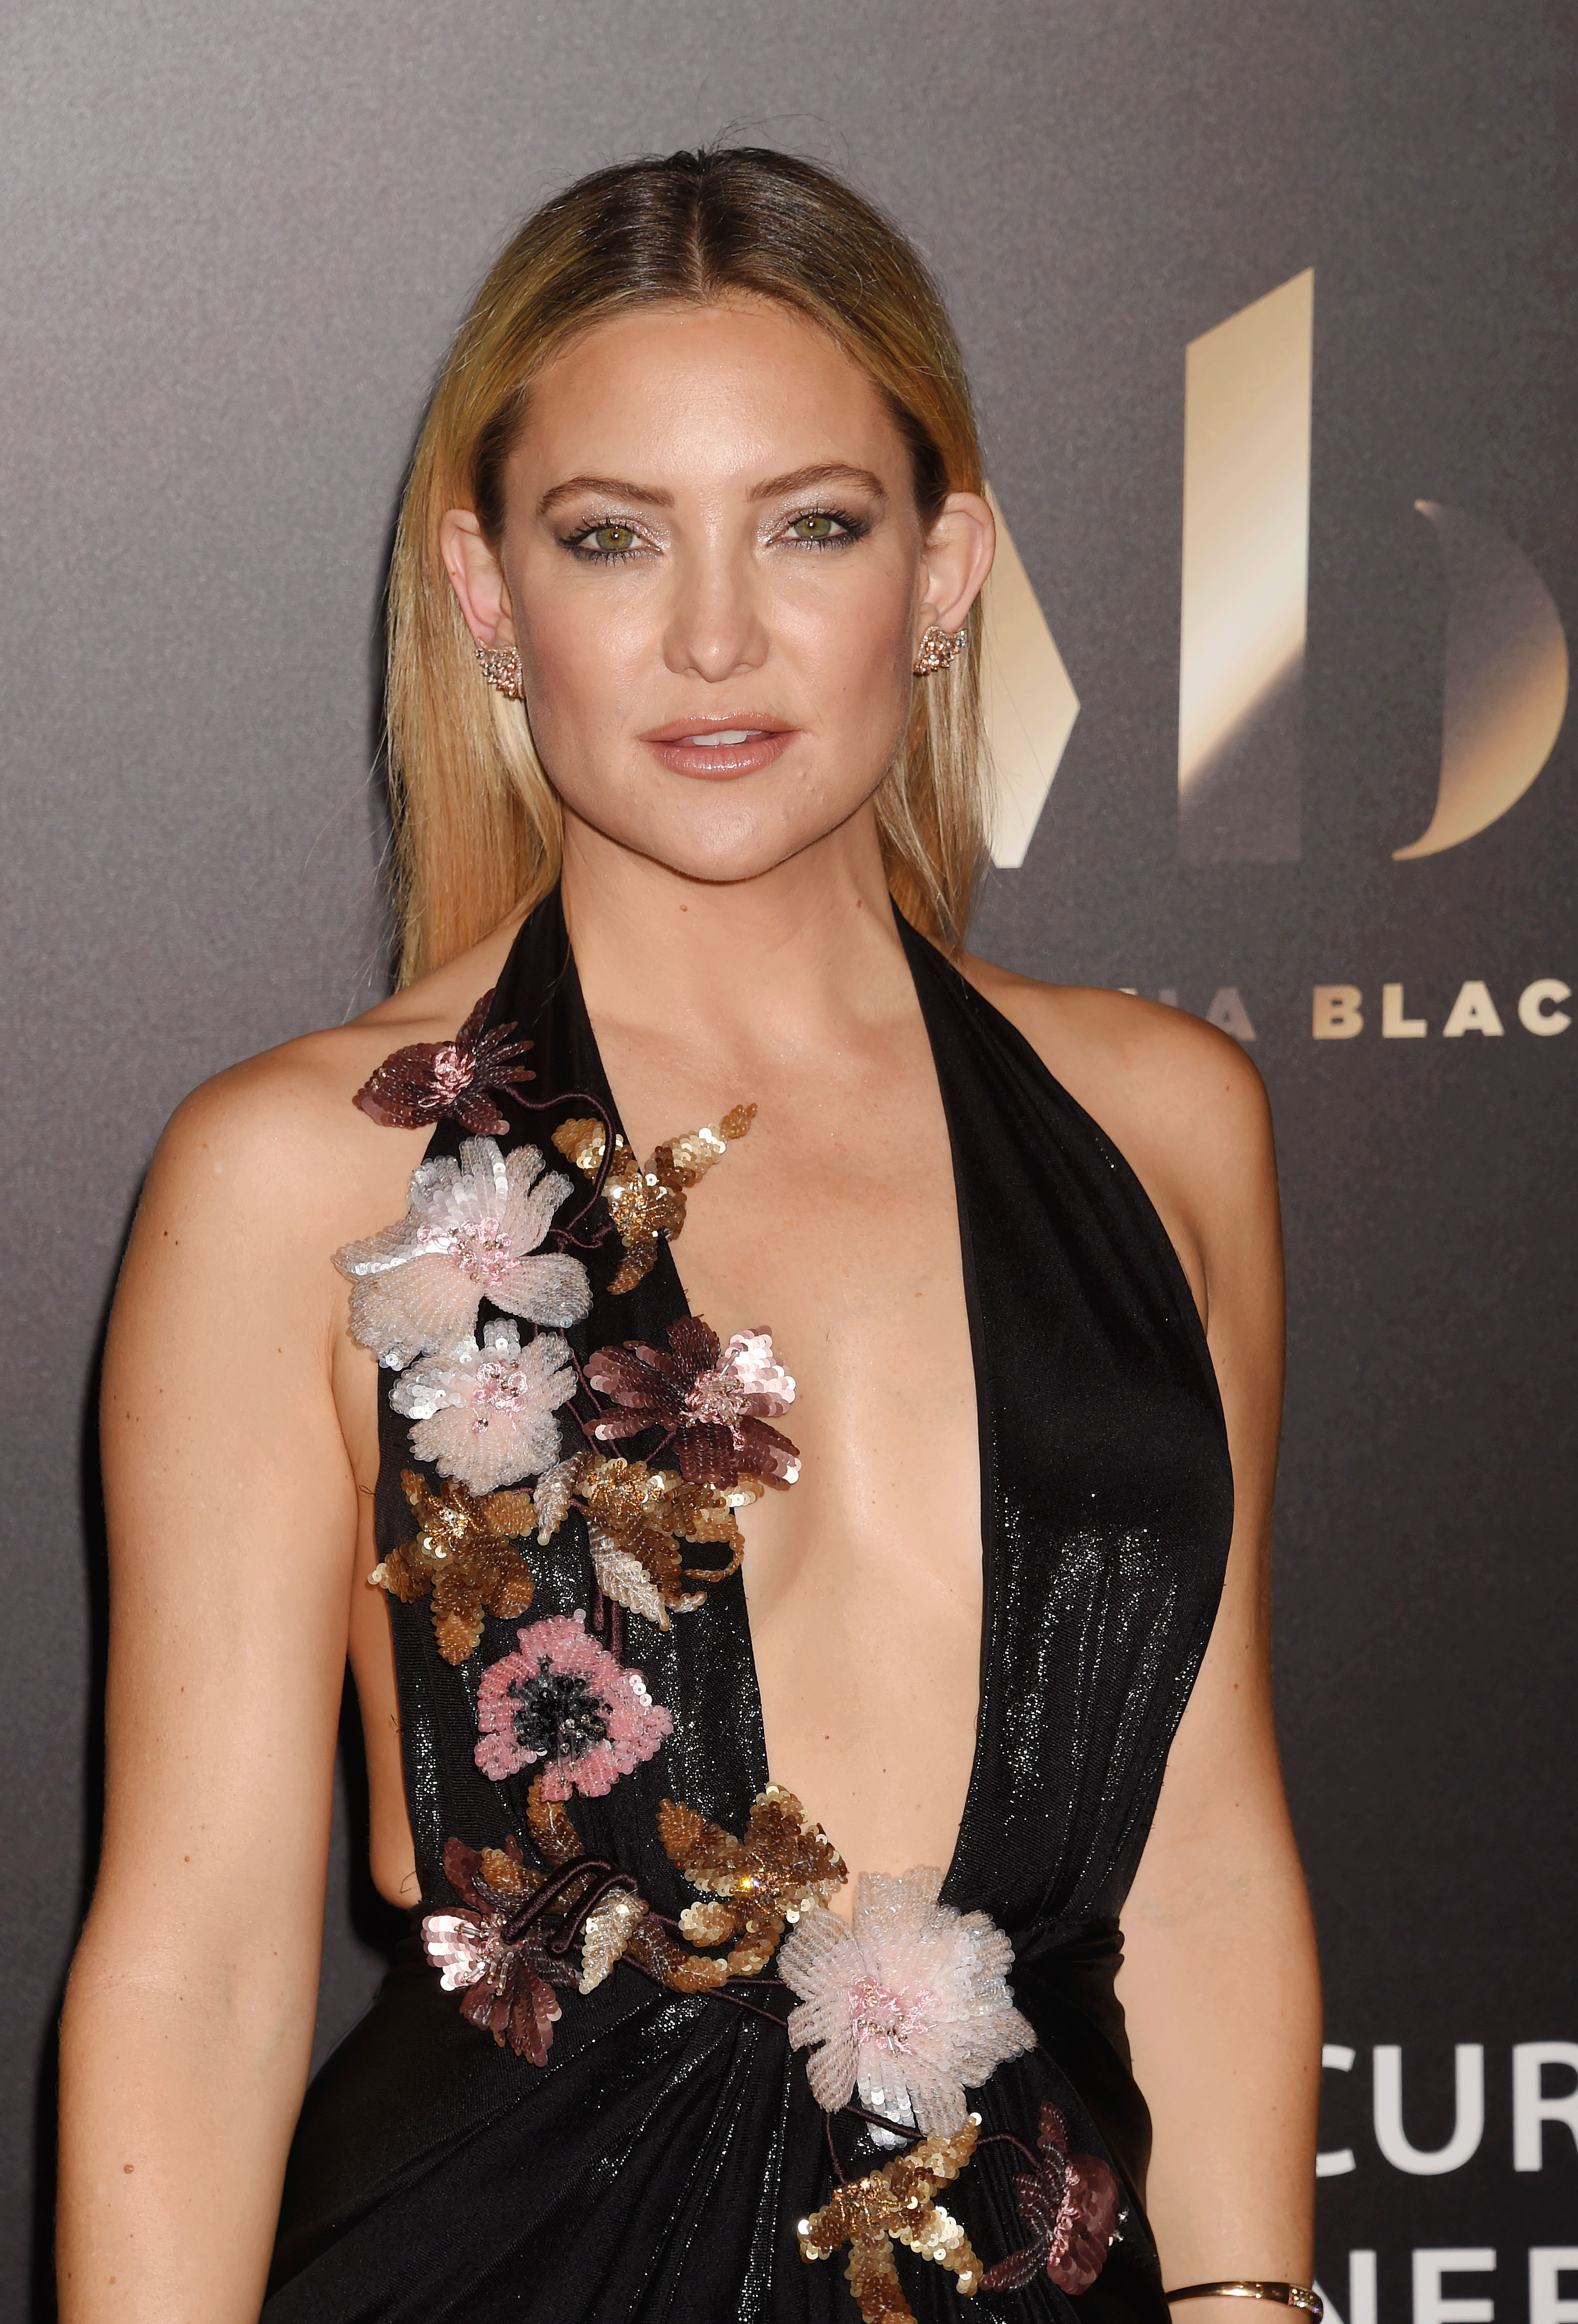 It's Kate Hudson's Turn for a Serious Hair Makeover